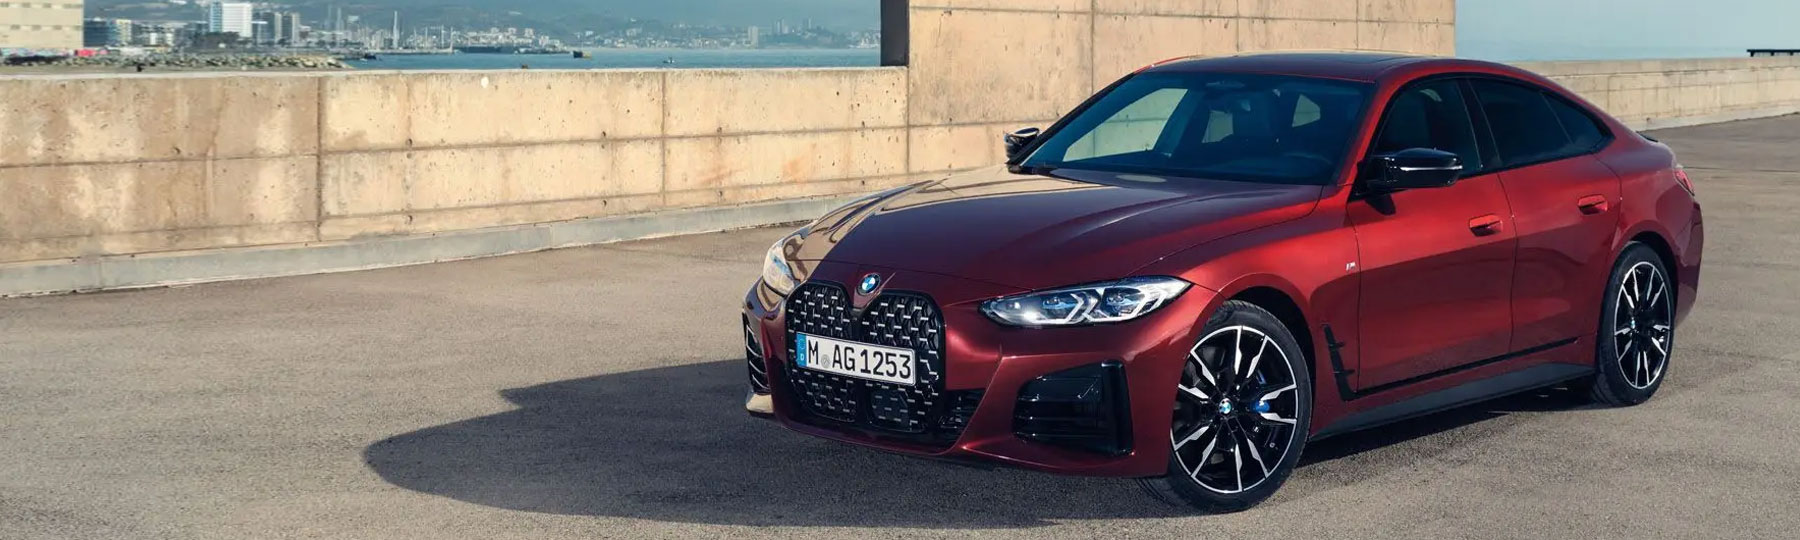 BMW 4 Series Gran Coupe Business Offer